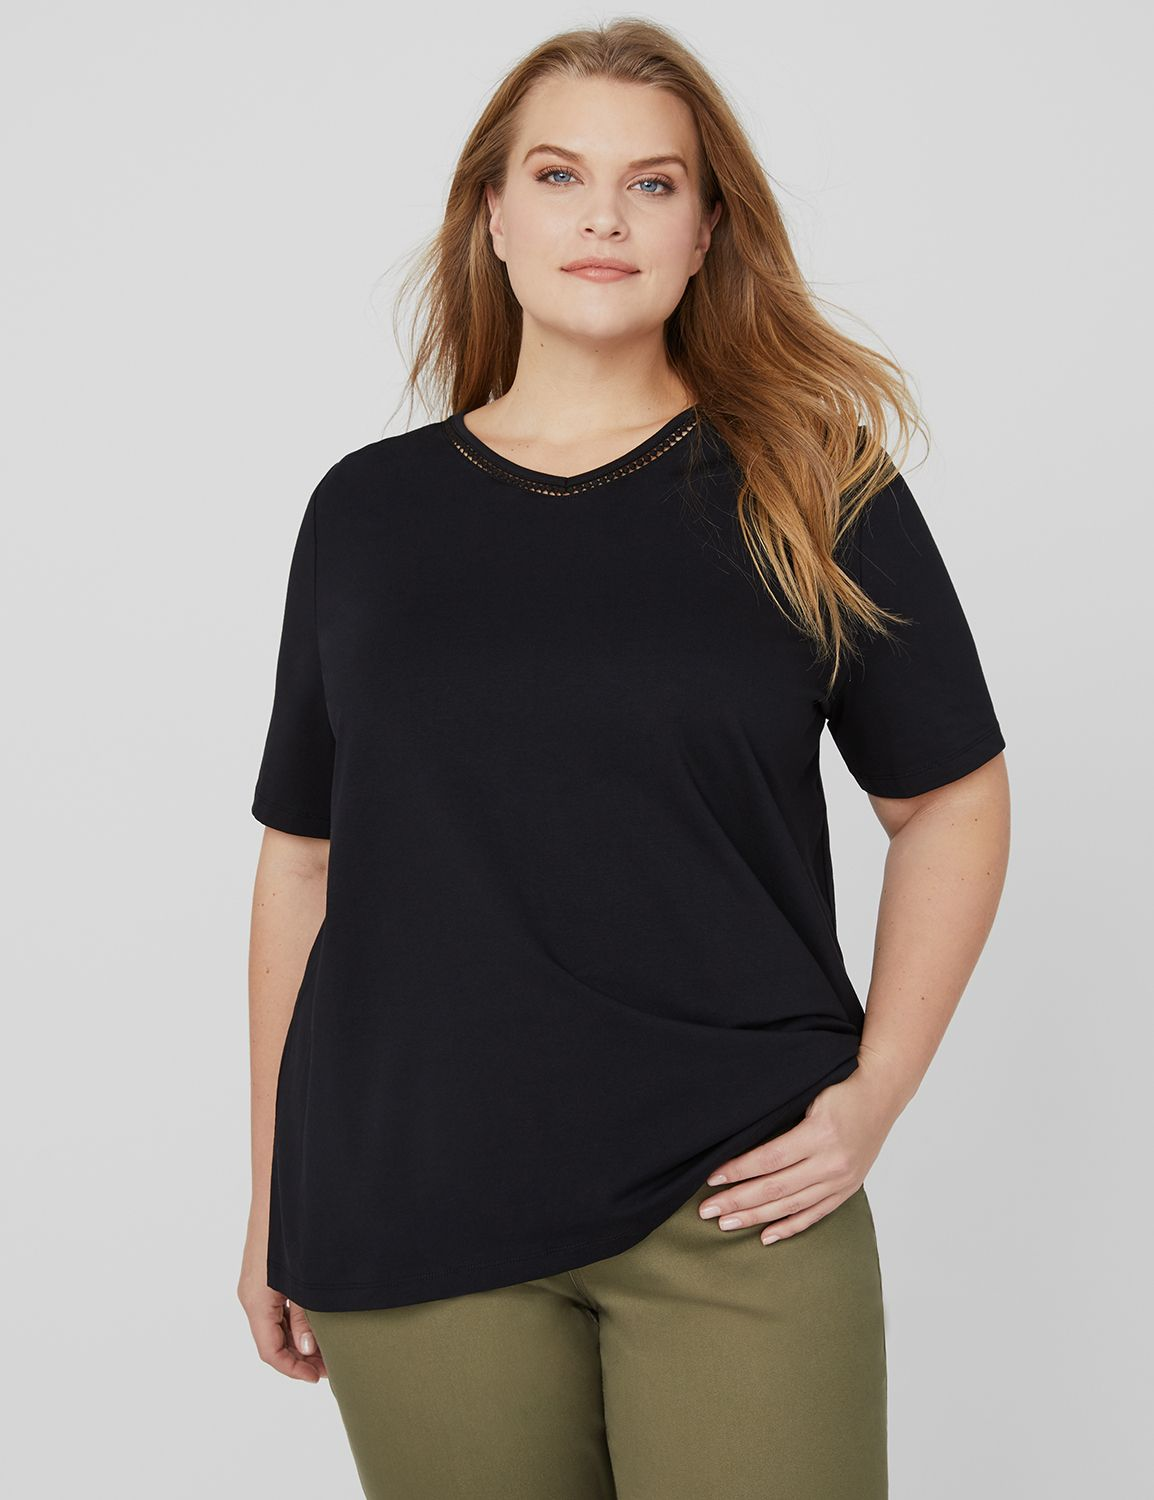 Suprema Lavish Tee 1087747 SS Basic Vneck with trim- S MP-300101131